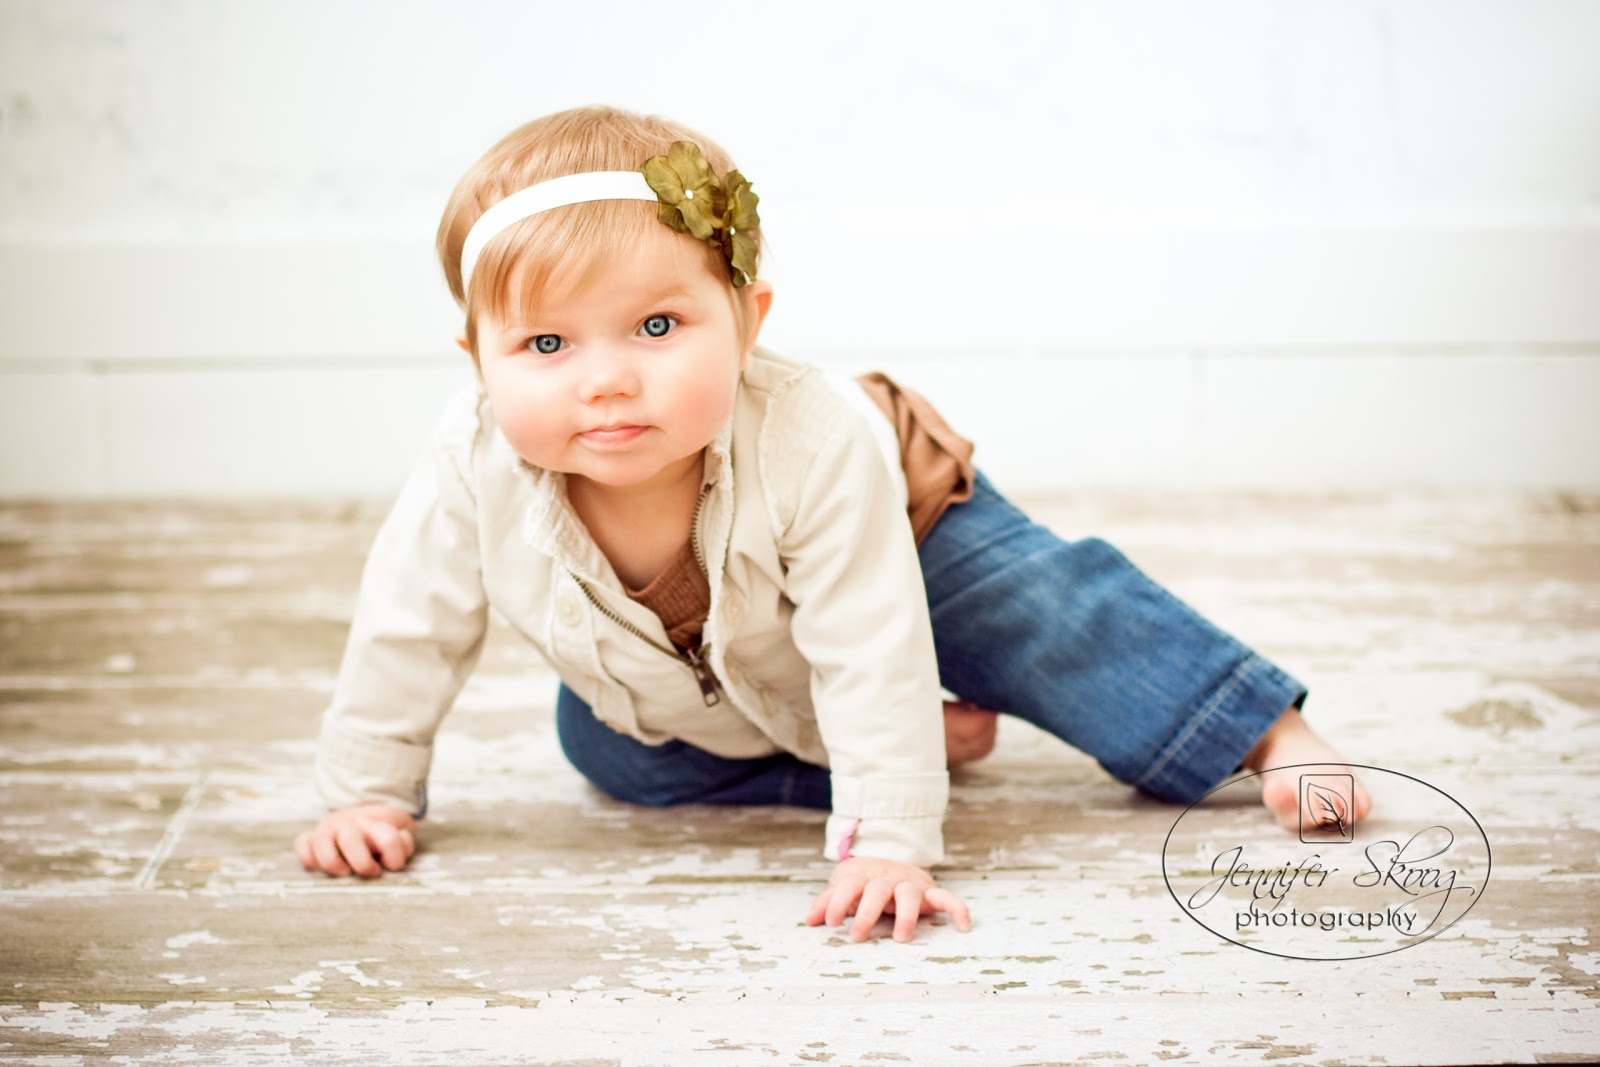 9 Month Baby Portrait Ideas http://jenniferskoogphotography.blogspot.com/2011/02/mini-session-9-month-old-baby-girl.html